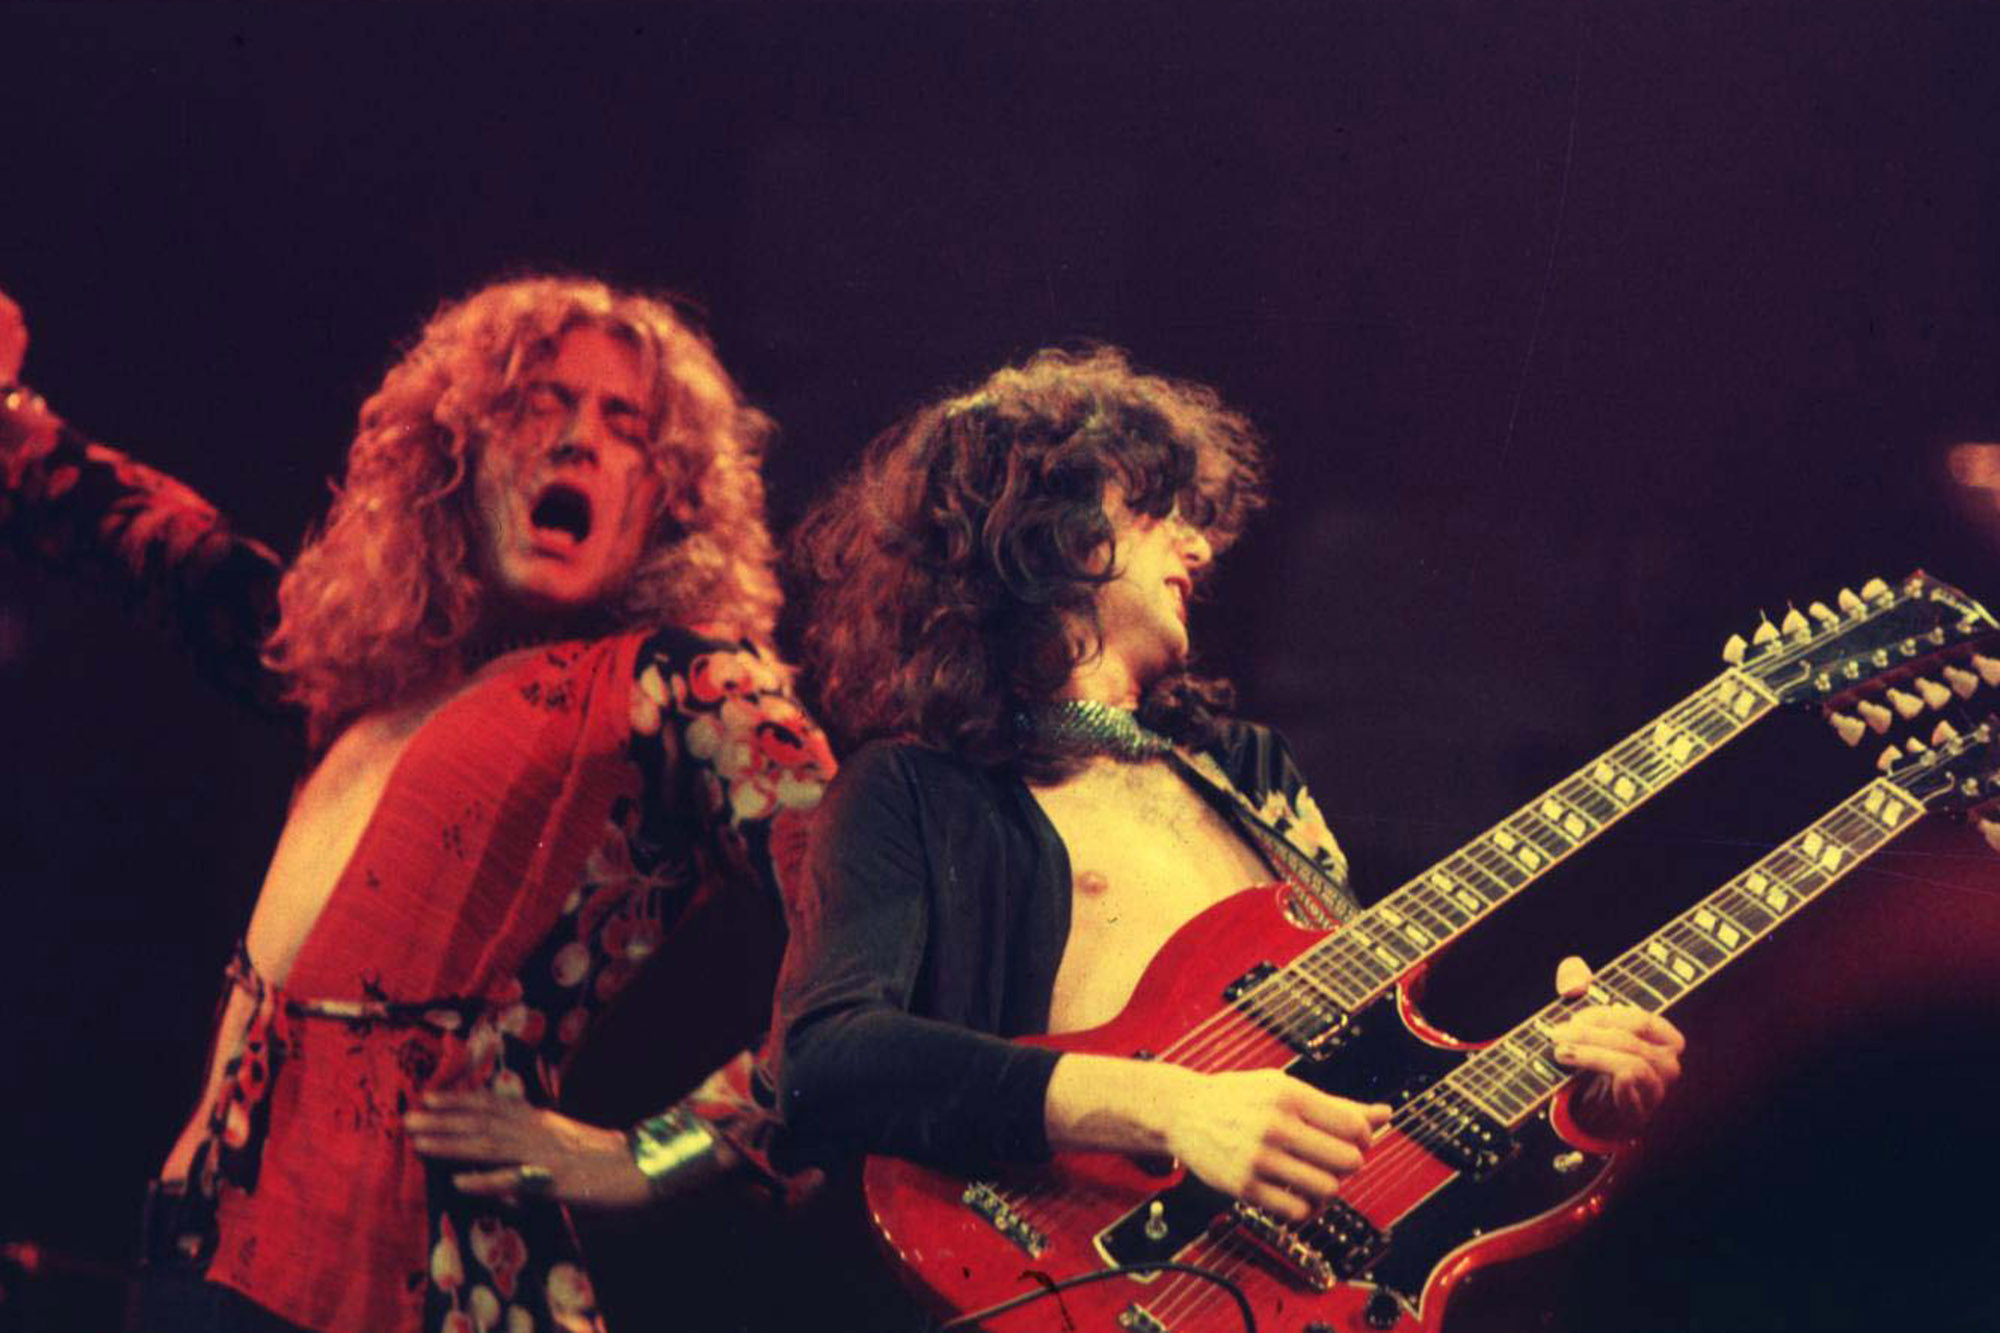 robert plant and jimmy page live wallpaper 2000x1333